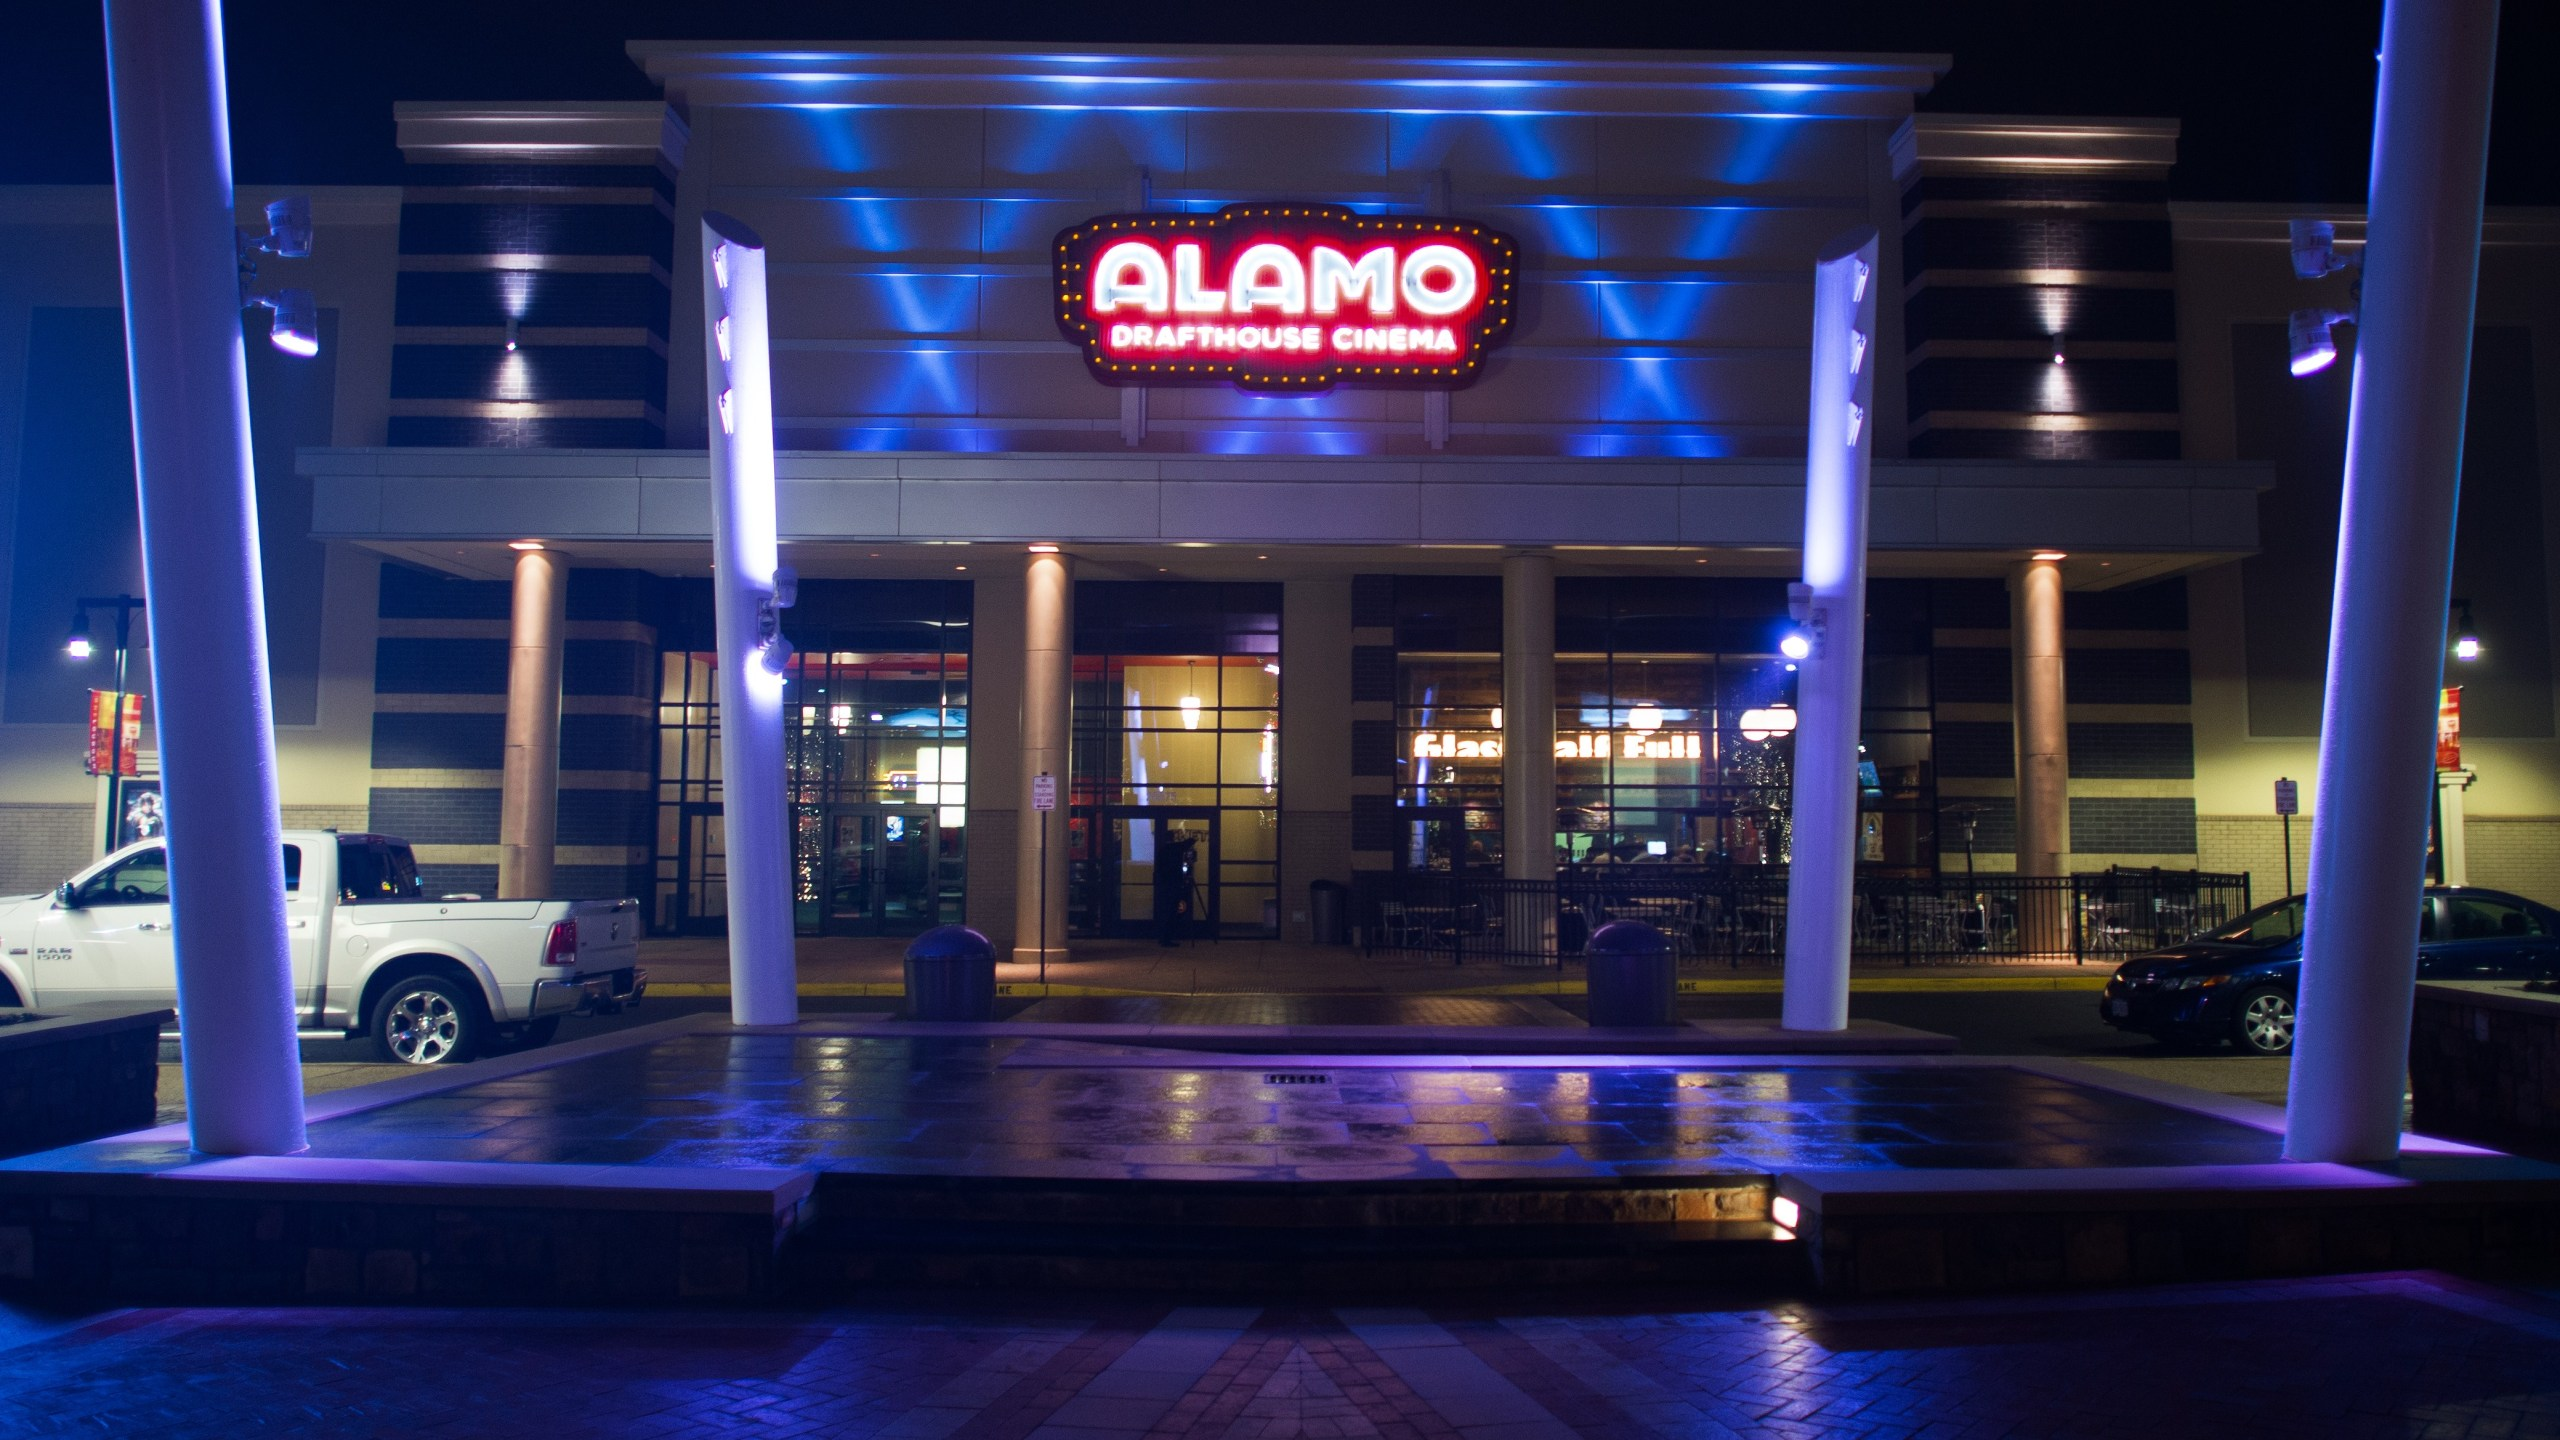 An exterior photo of the Alamo Drafthouse Cinema on Dec. 23, 2014, in Ashburn, Virginia. (Credit: PAUL J. RICHARDS/AFP/Getty Images)